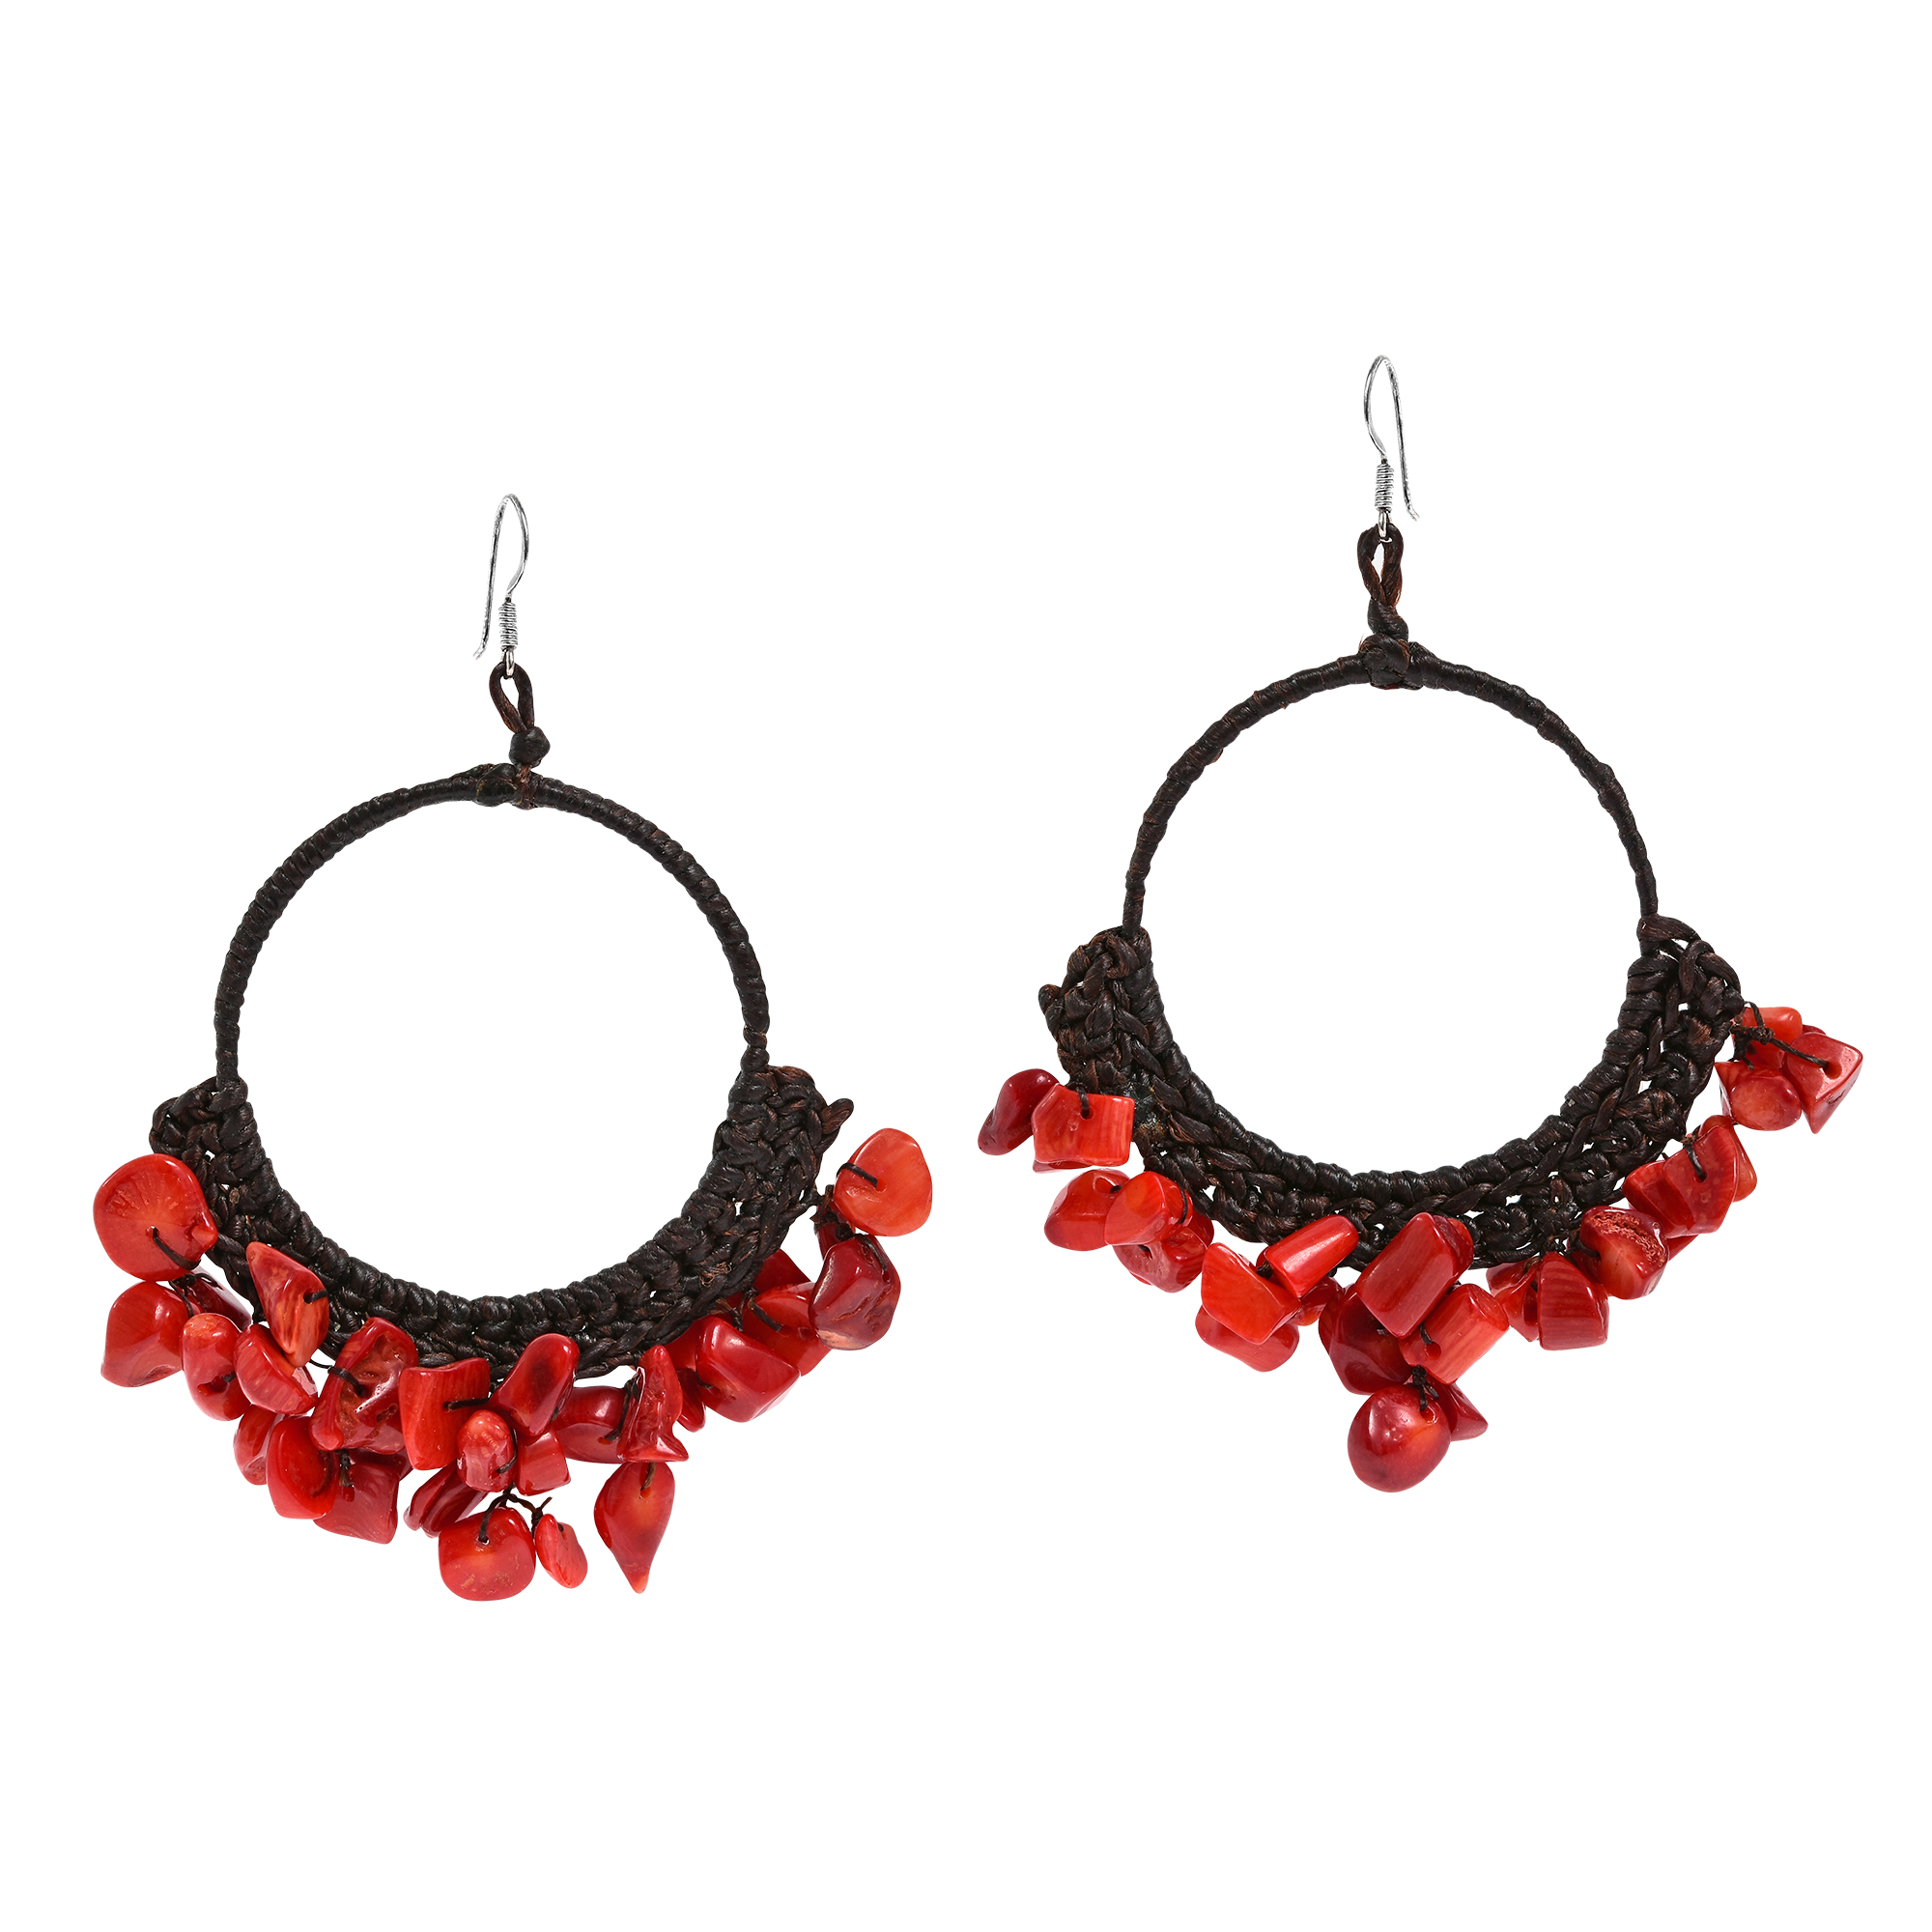 Red coral stone chandelier hoop earrings aeravida dress with an elegant and earthy vibe with these earring featuring a cotton rope hoop accented with gemstones dangles on sterling silver hooks aloadofball Choice Image